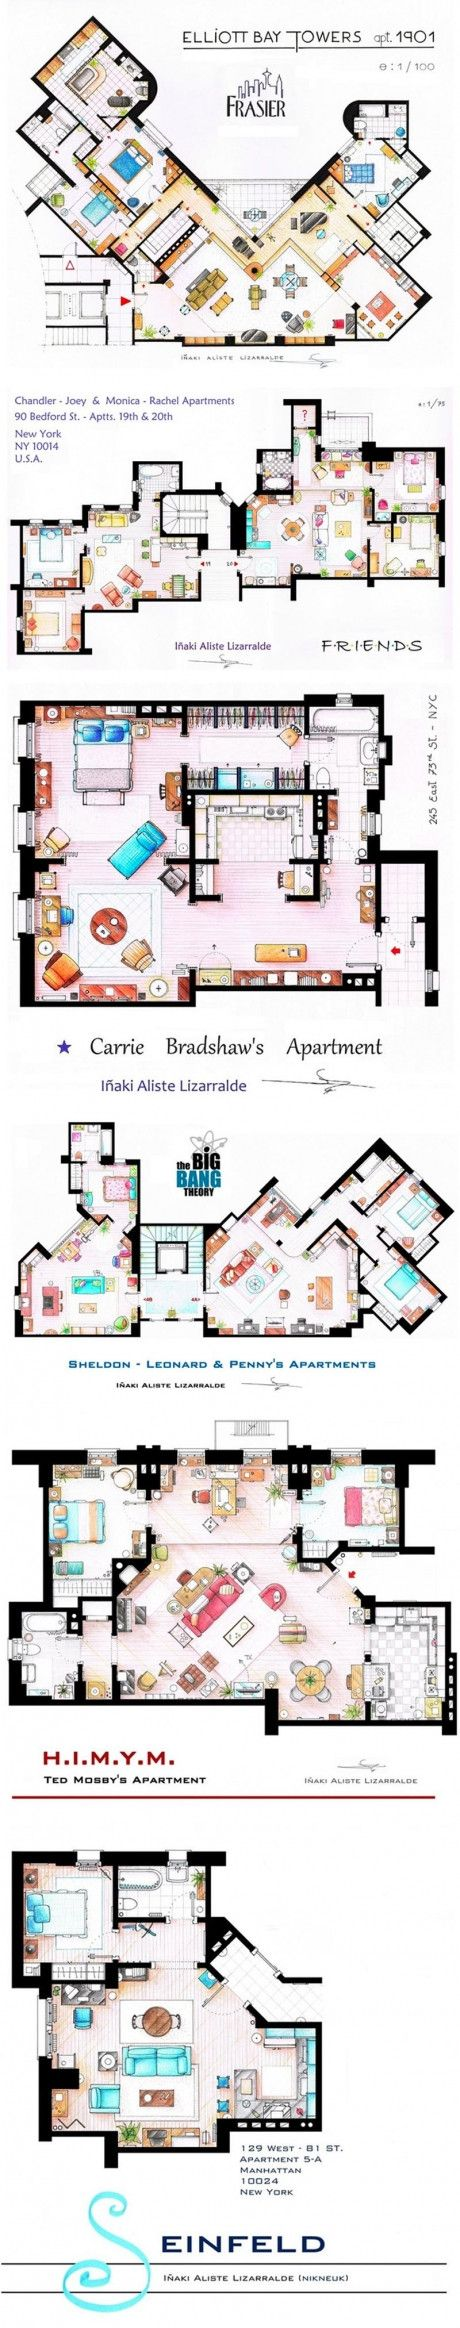 Floor Plans Seinfeld And Tv Shows On Pinterest